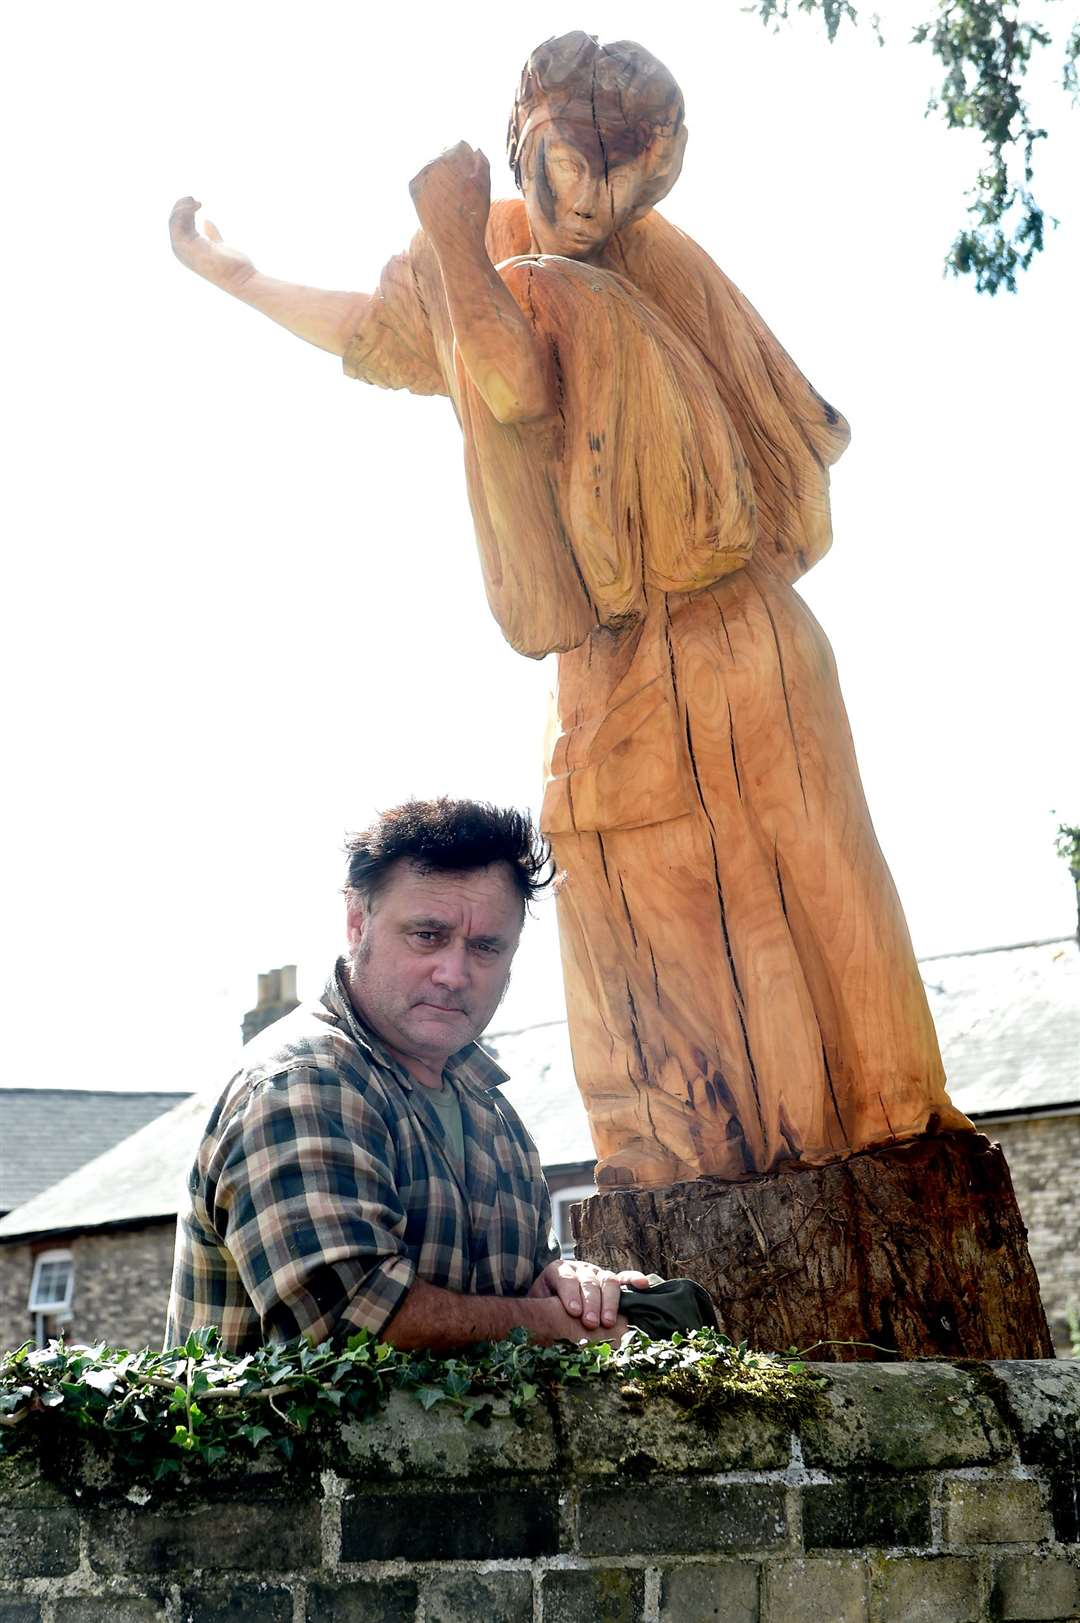 A project, which pays homage to Sudbury's silk weaving industry, is nearing completion..A statue in Weavers' Piece garden, carved out of a tree is a new edition to the site...Pictured:John Moore (carpenter)....PICTURE: Mecha Morton ... (16092492)